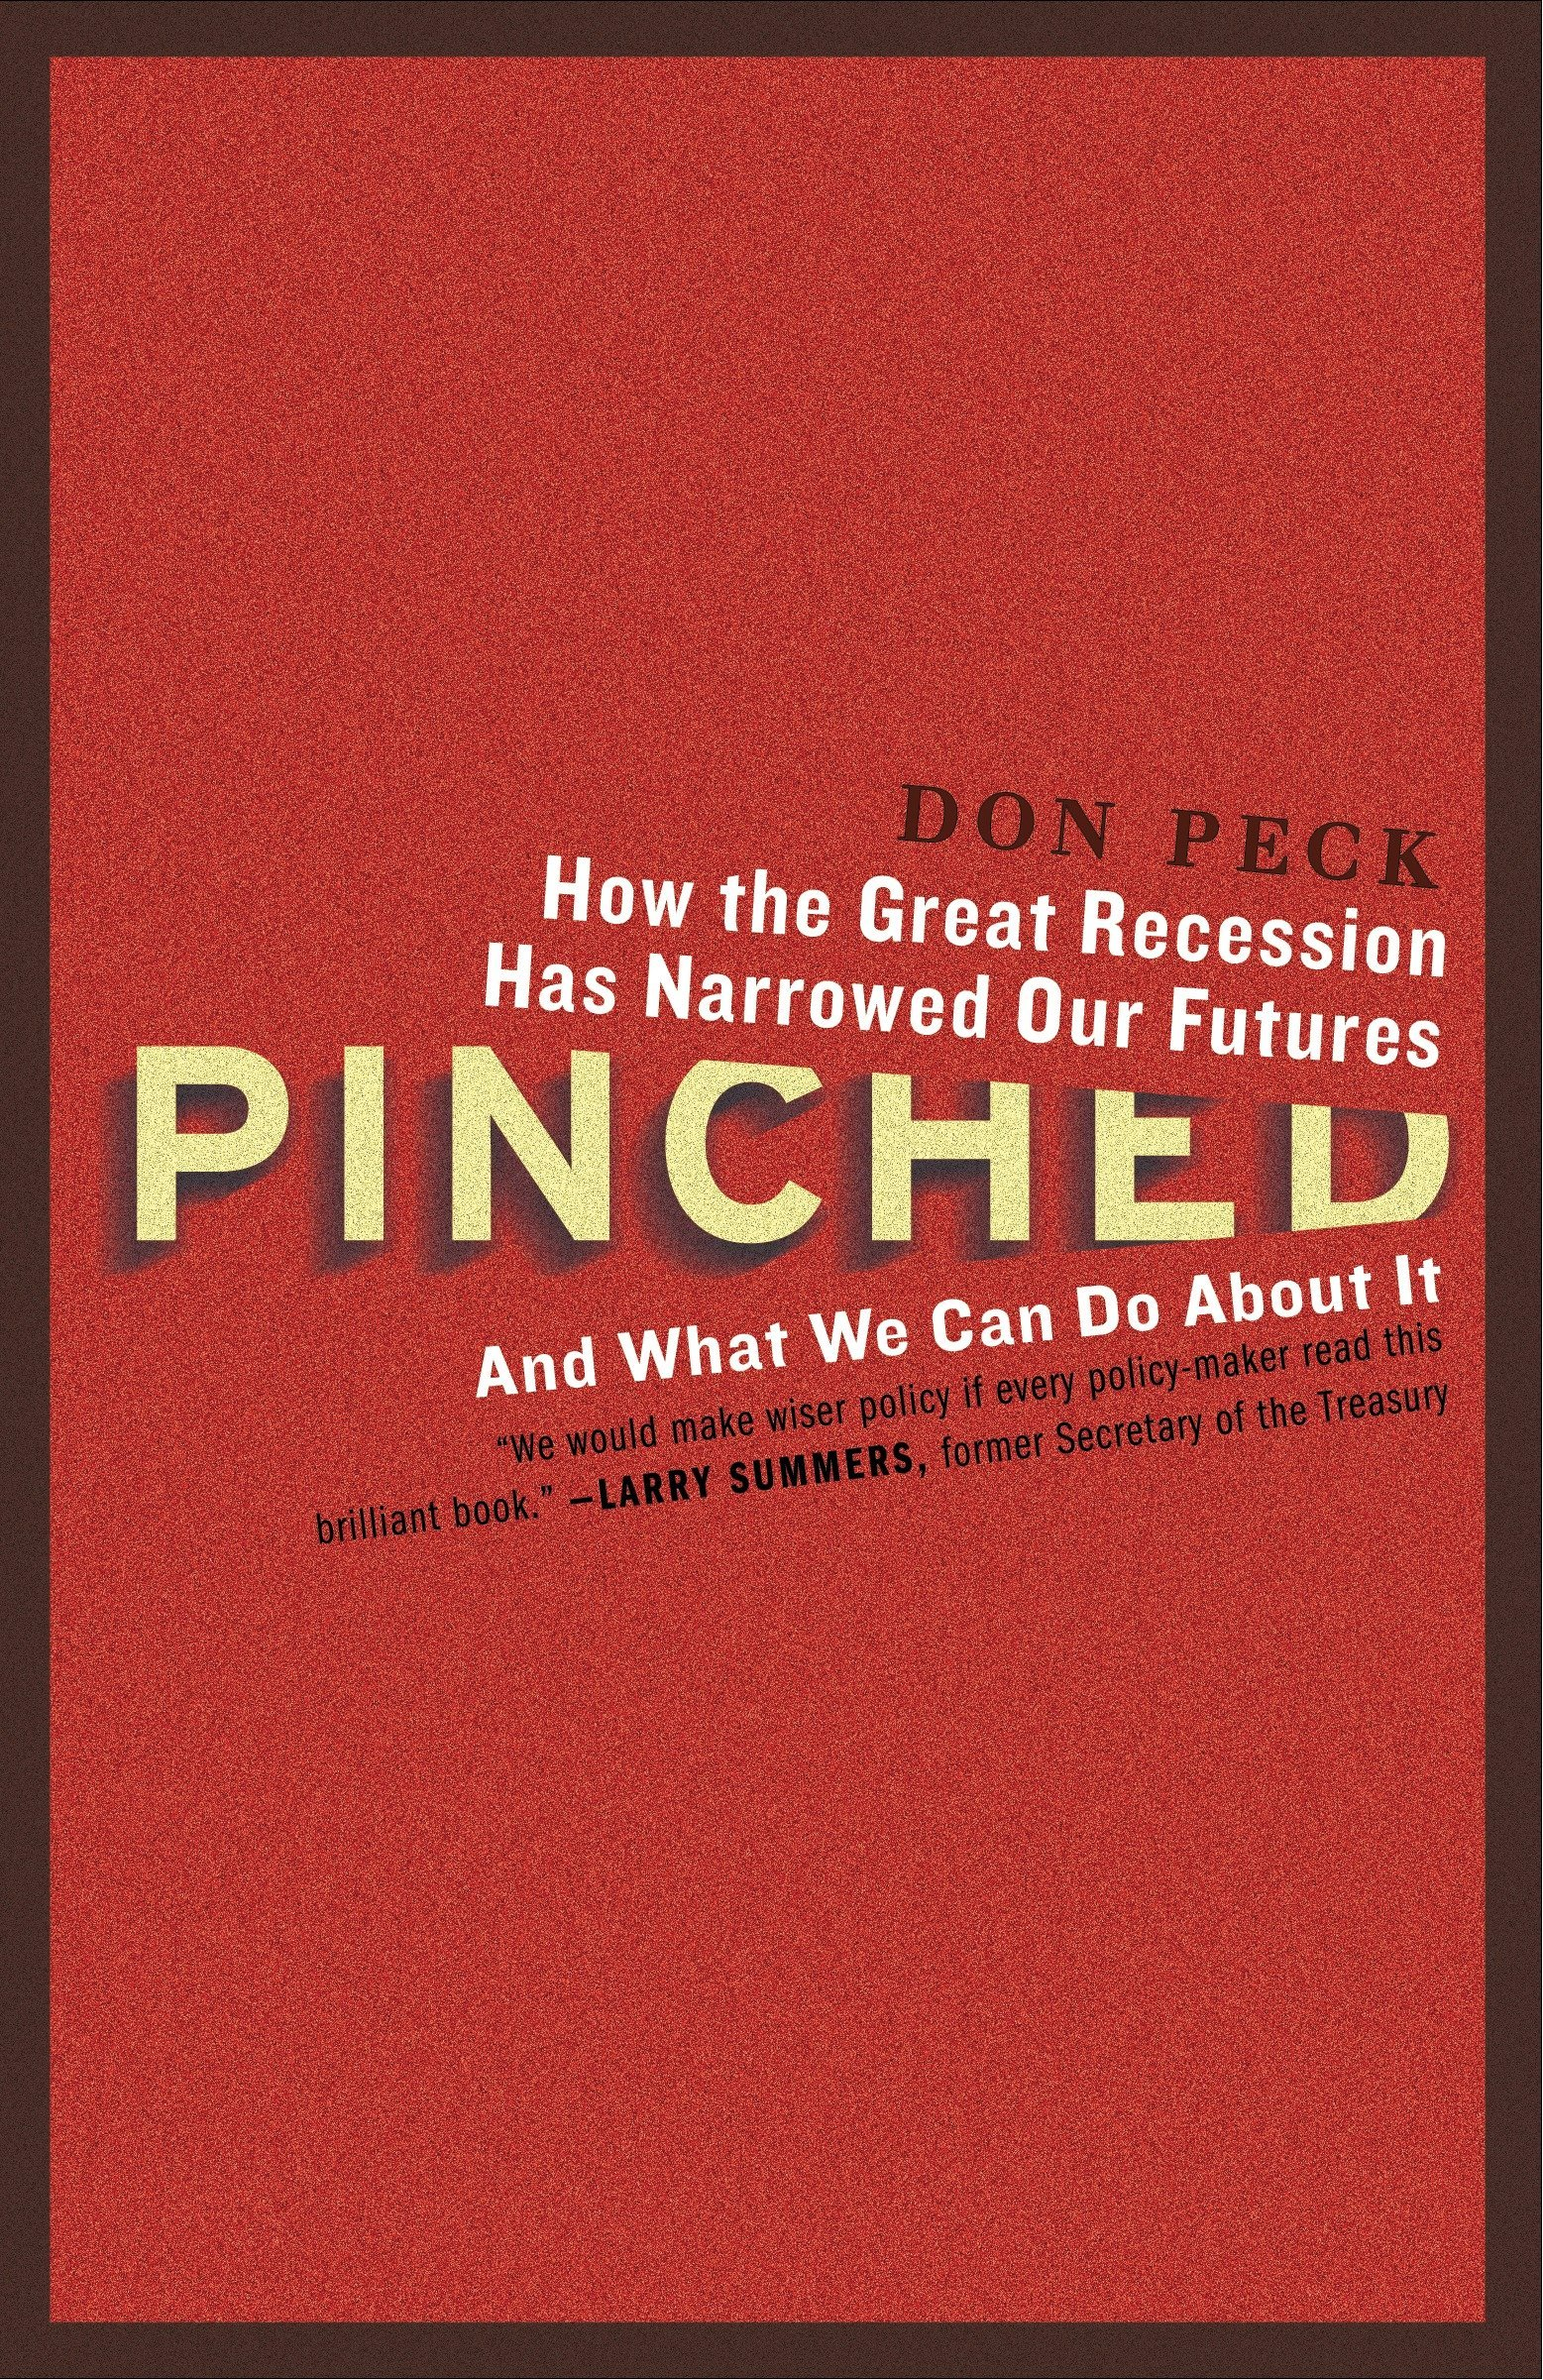 pinched how the great recession has narrowed our futures and what